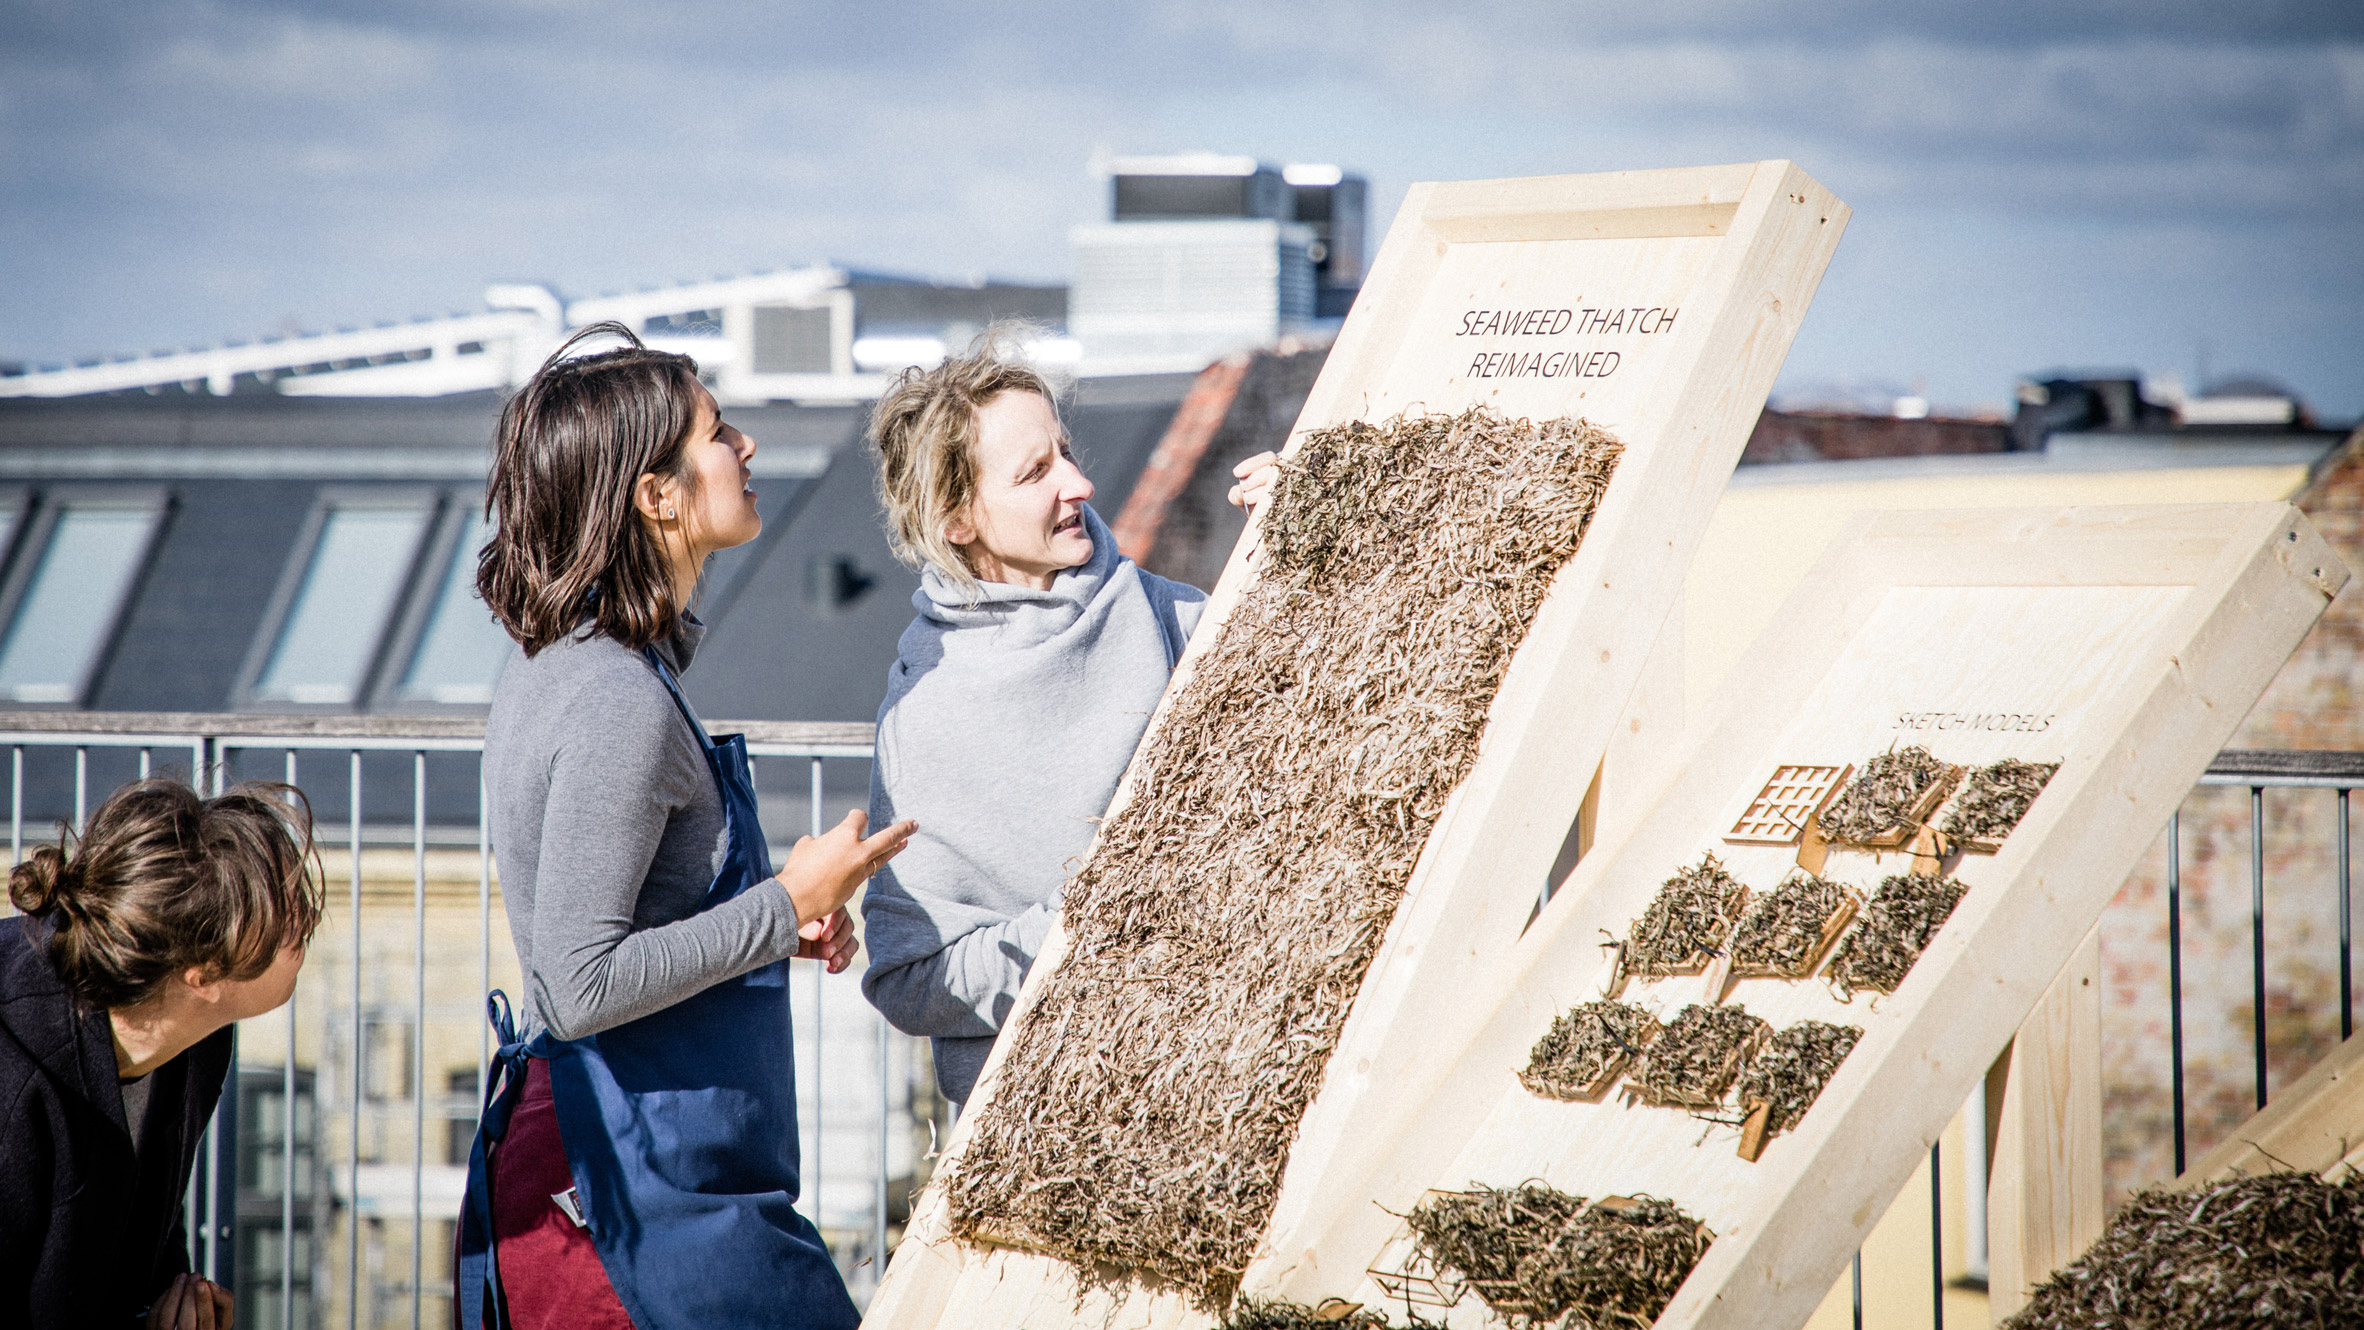 Viking-style seaweed thatch updated into prefab panelling